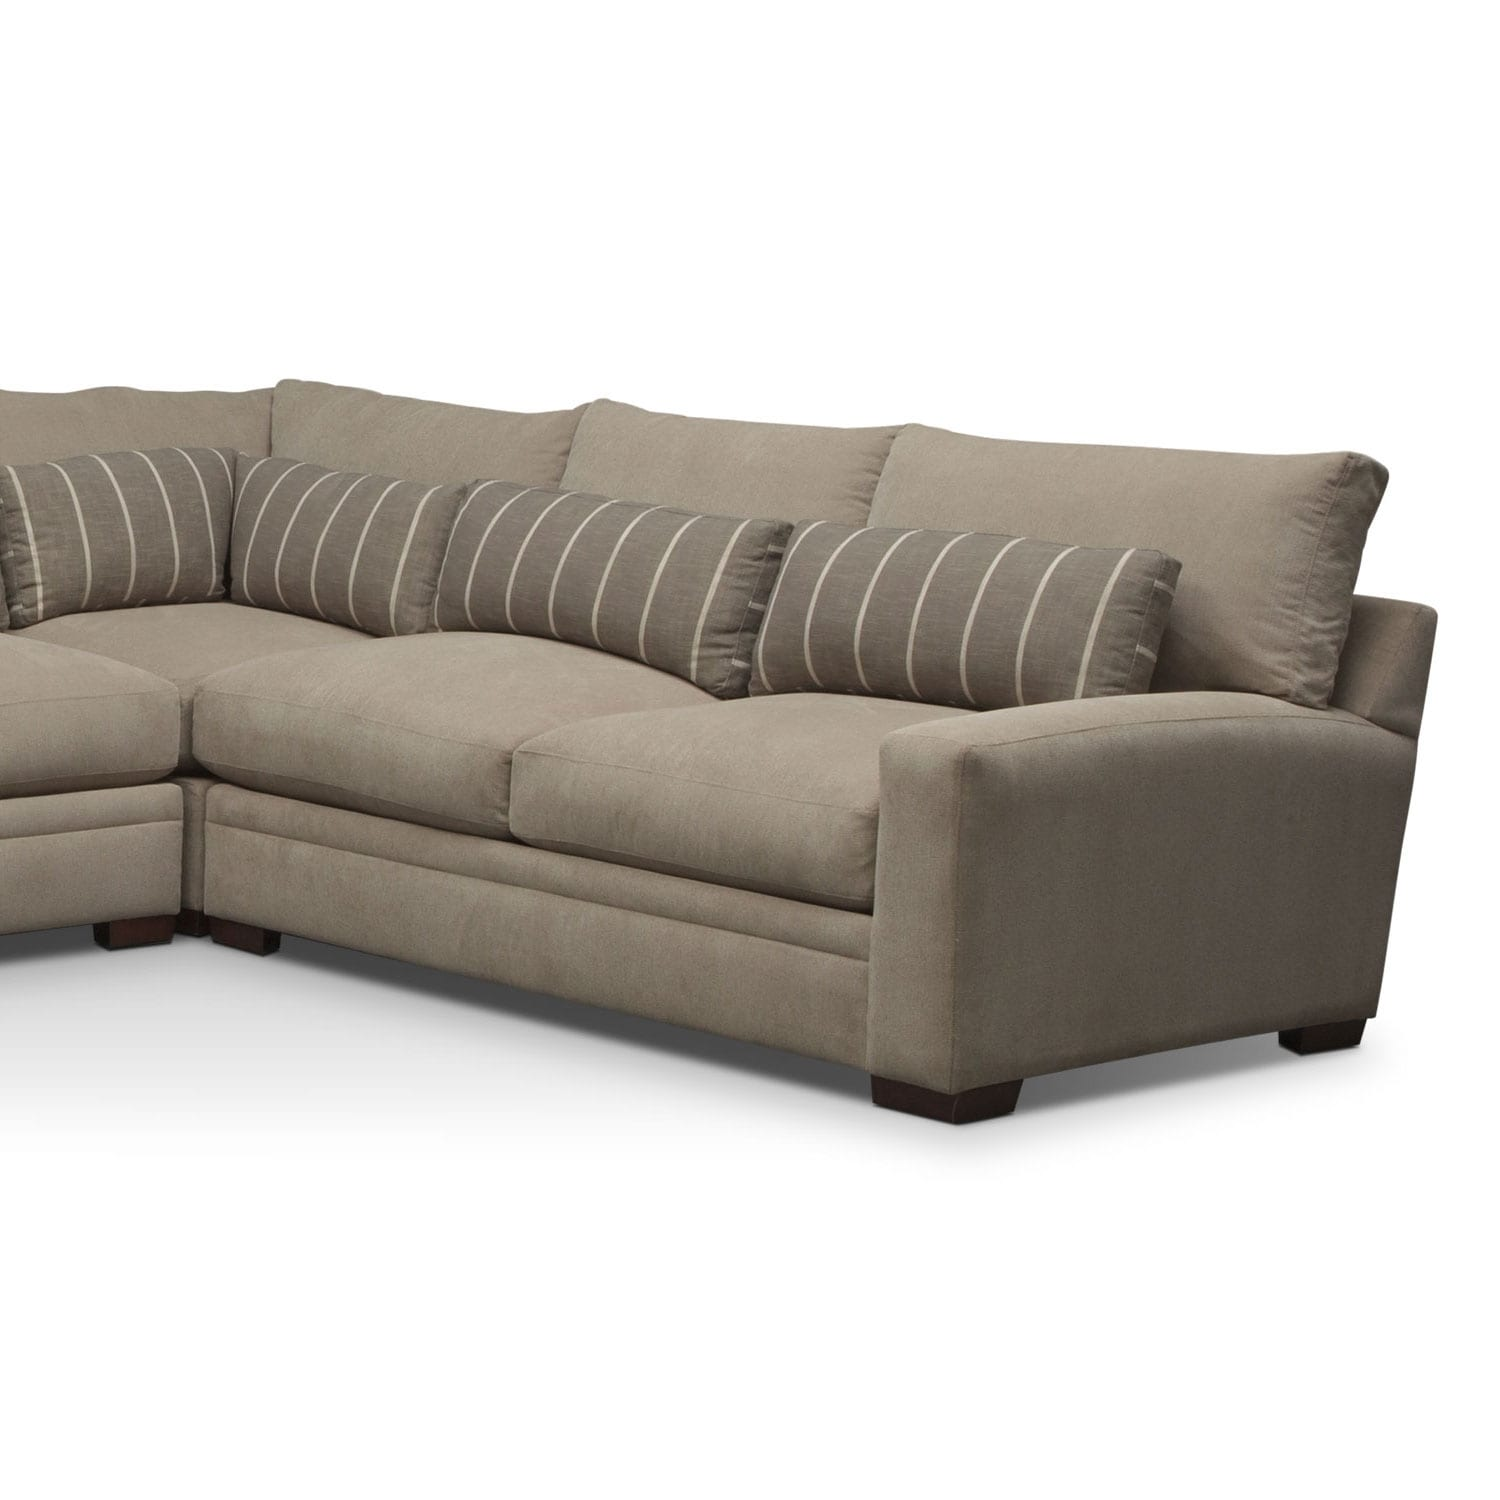 where to donate sectional sofa ebay loose covers ventura 4 piece left facing buff value city